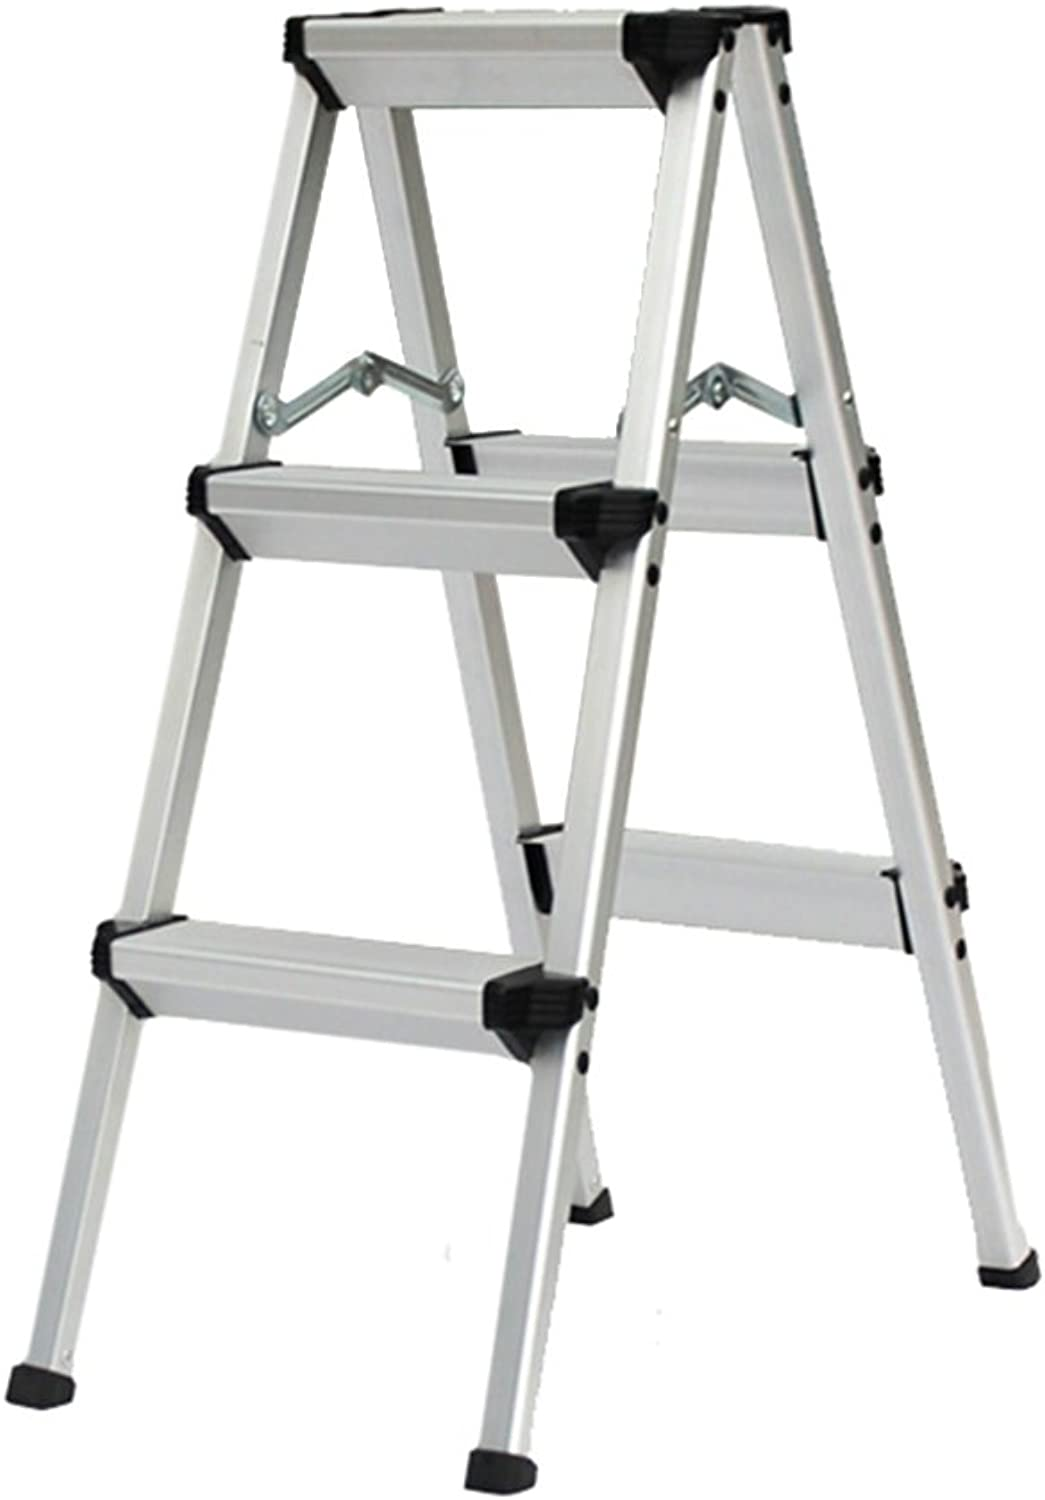 Bxfdc Heavy-Duty Steel Folding Portable Wide Step Ladder Stool Non-Slip Stair Stool Home Step Stool Weight 150kg (Size   3 Step)